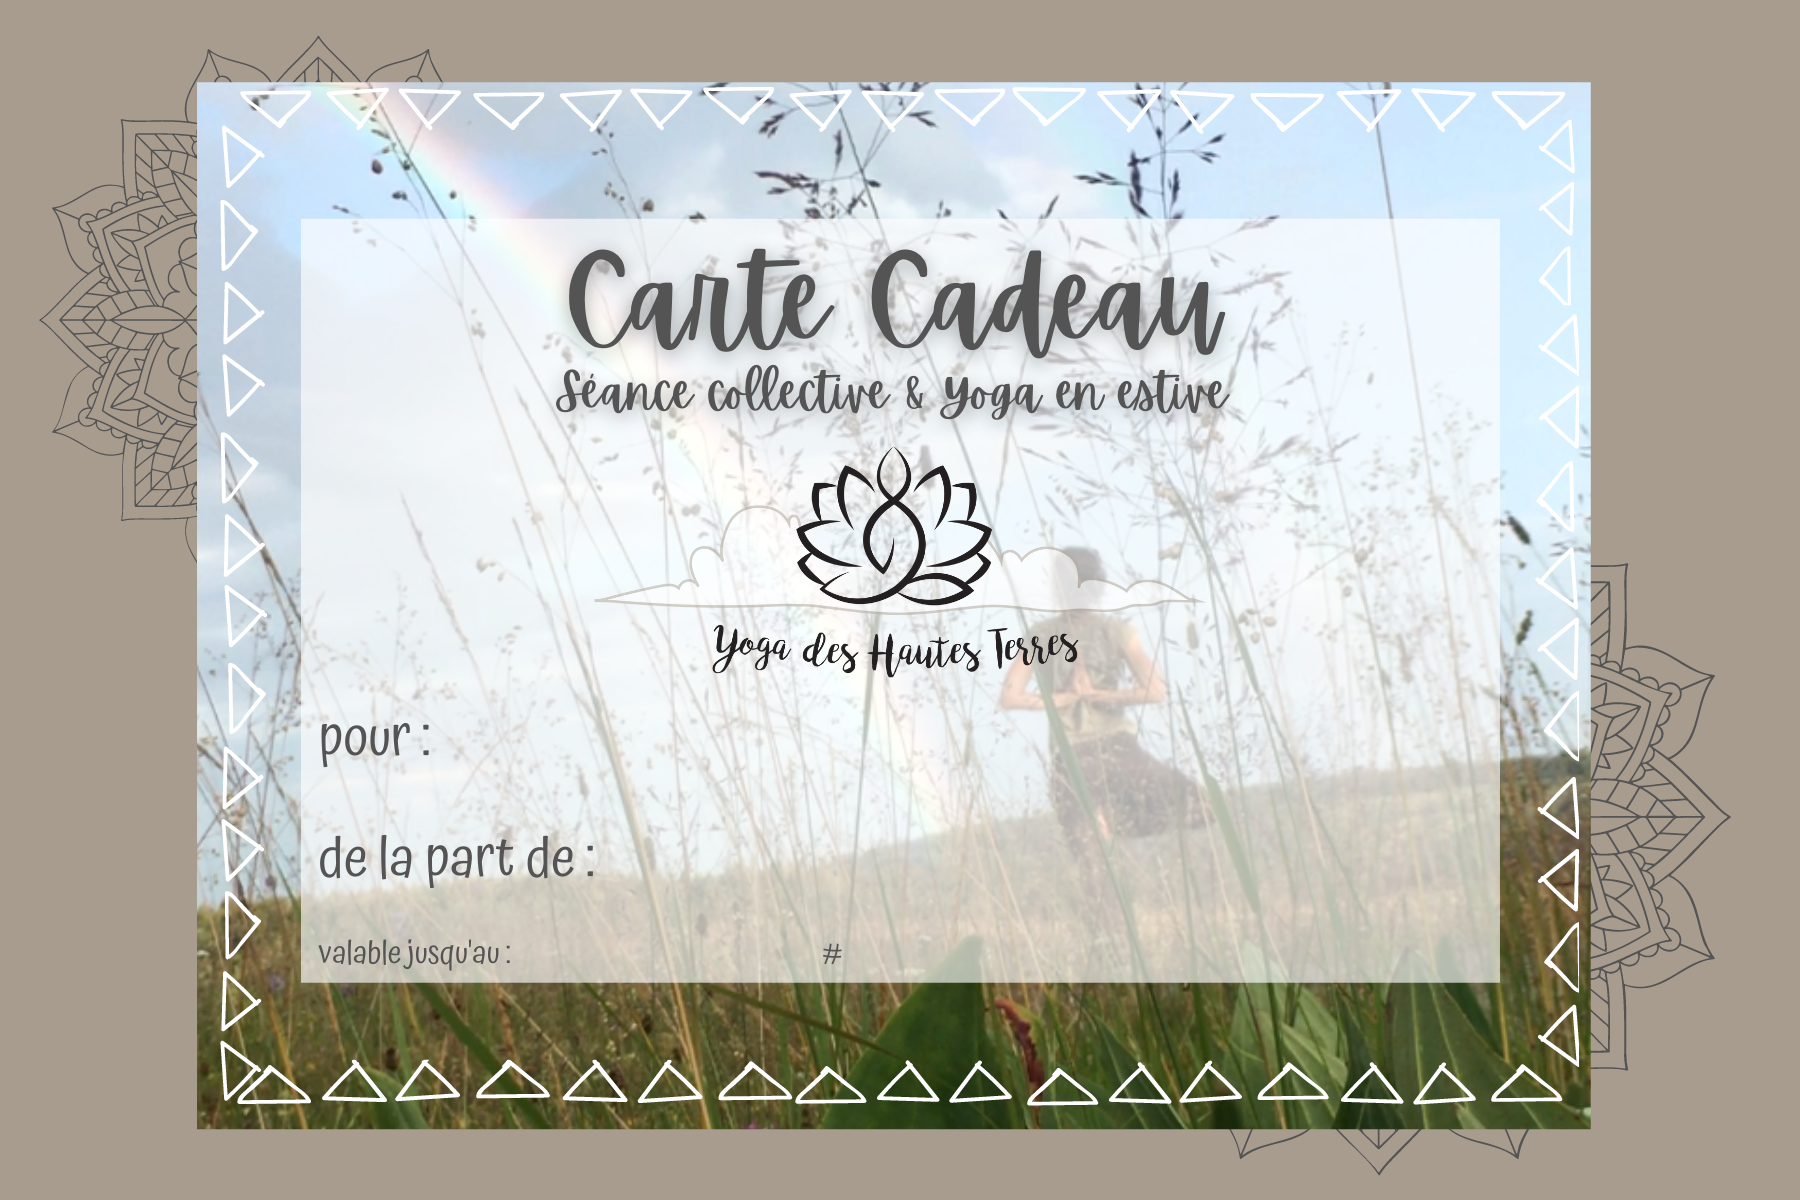 carte cadeau yoga cantal -seance